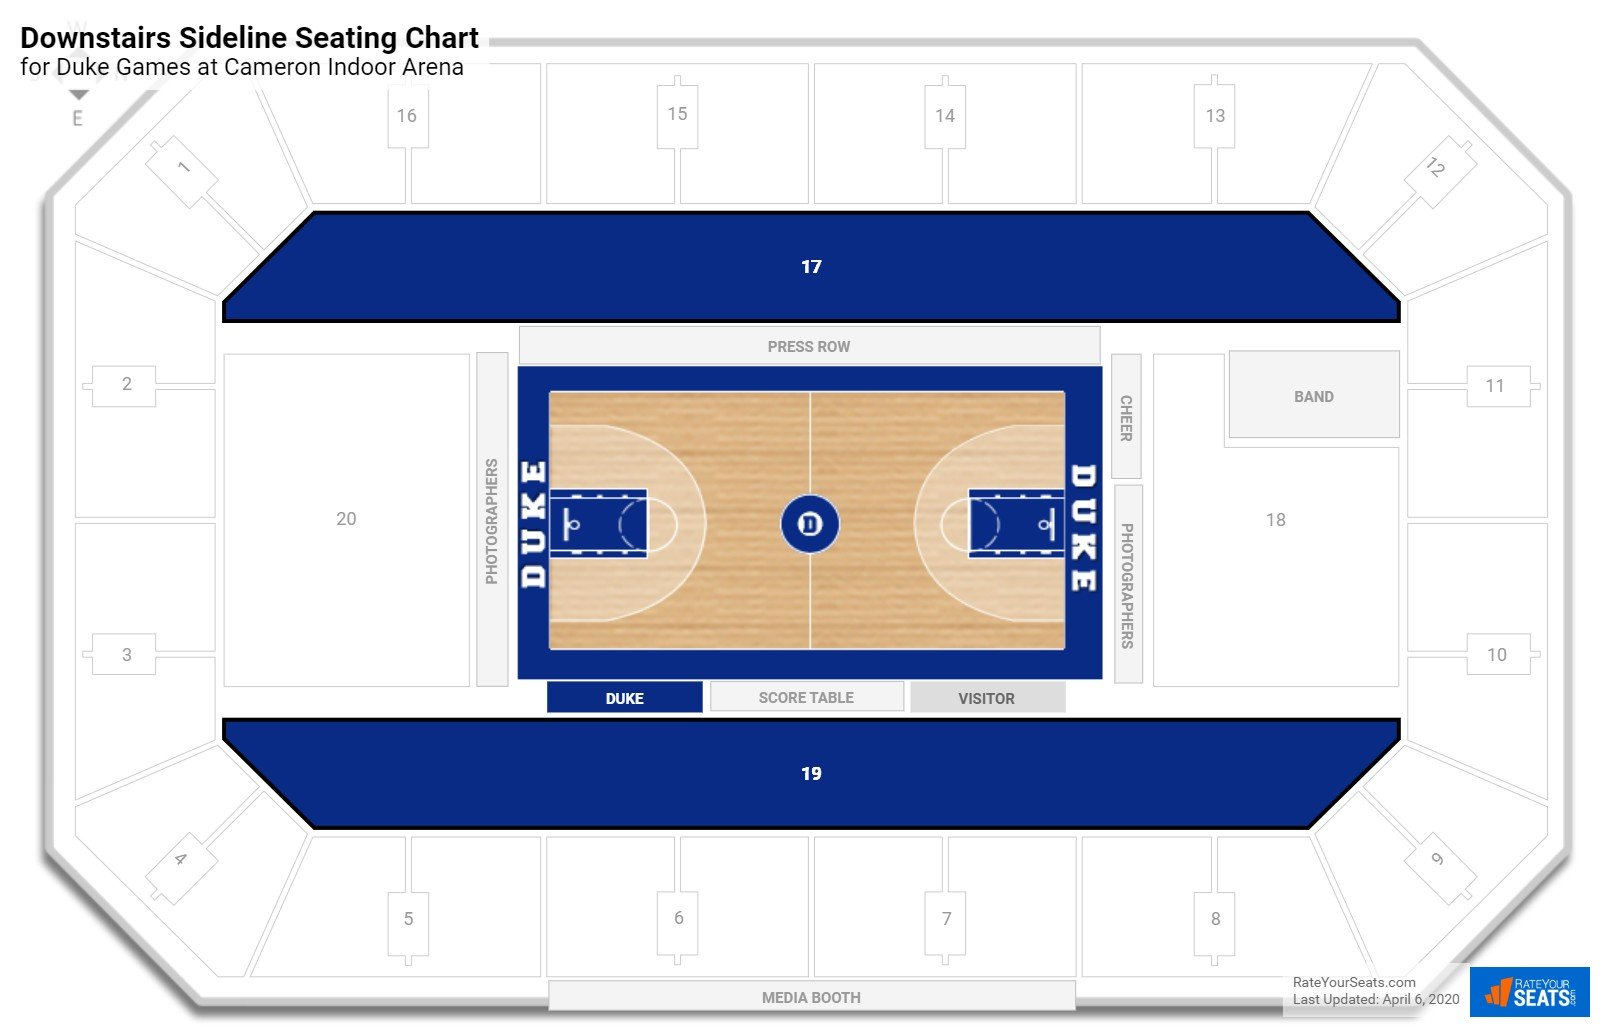 Cameron Indoor Stadium Downstairs Sideline seating chart